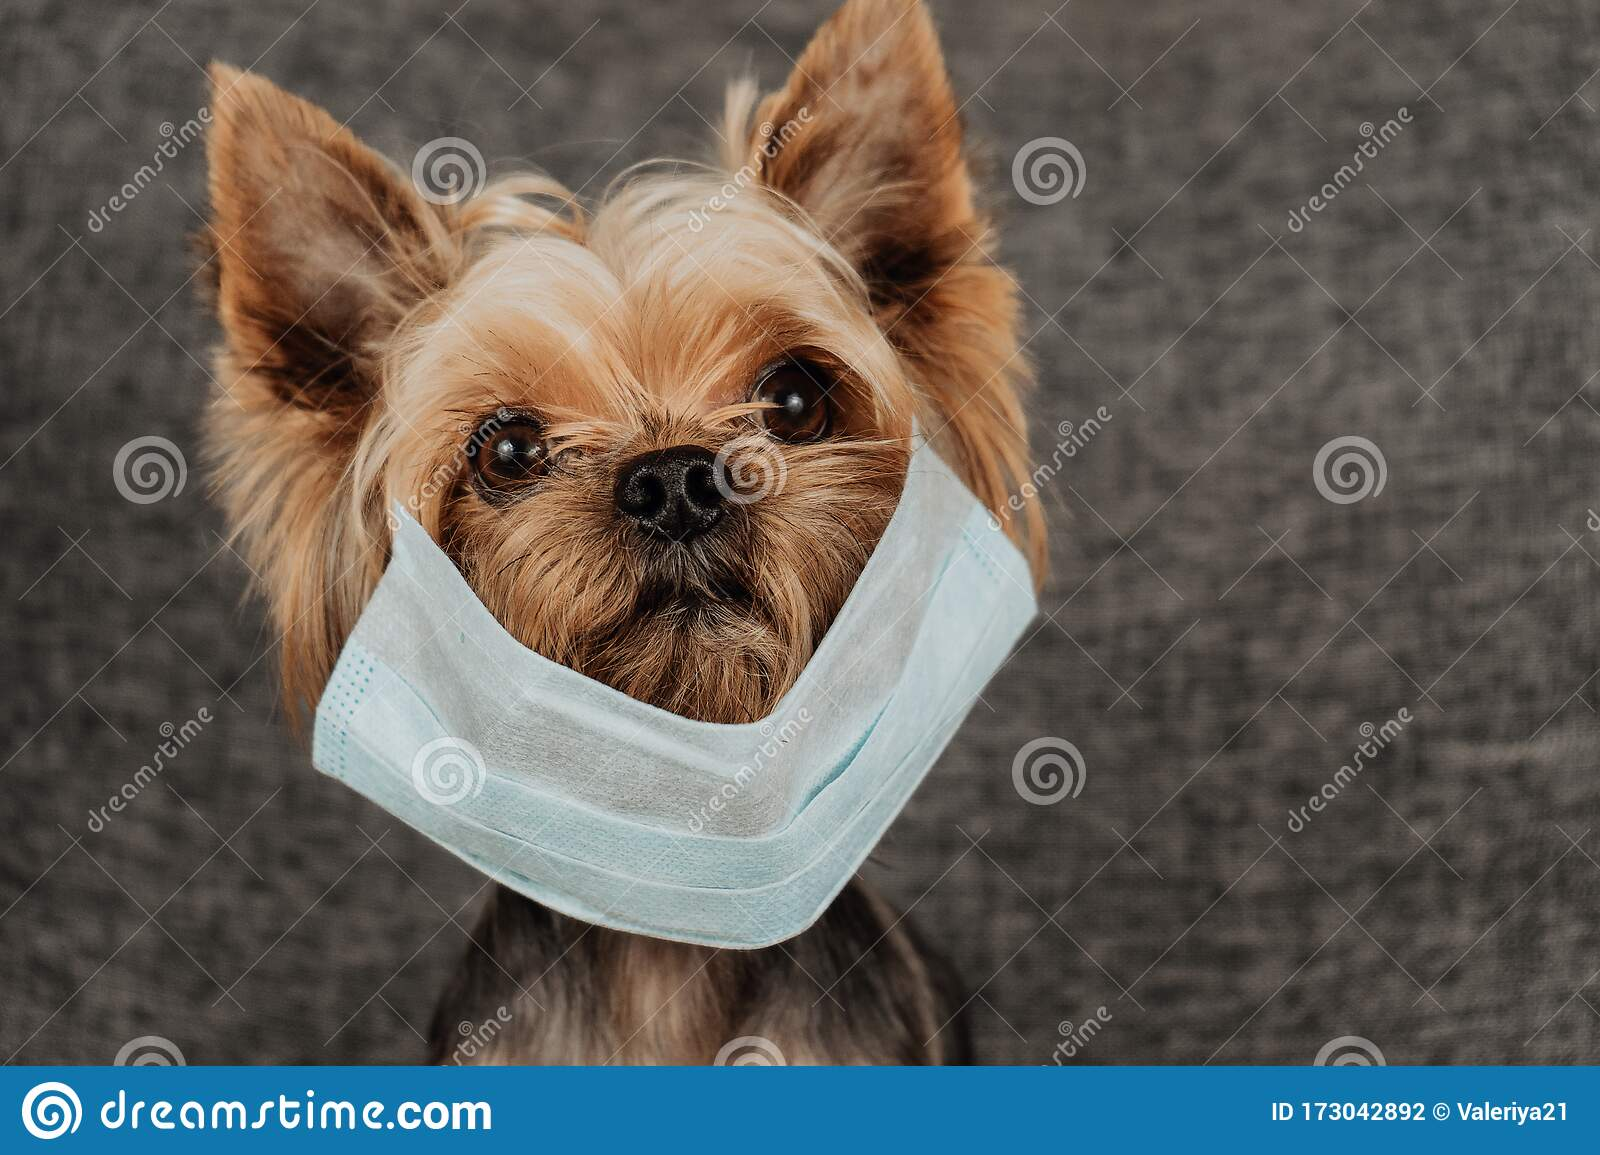 Dog Yorkshire Terrier In A Medical Mask Coronavirus Health Protection Stock Photo Image Of Canine Small 173042892